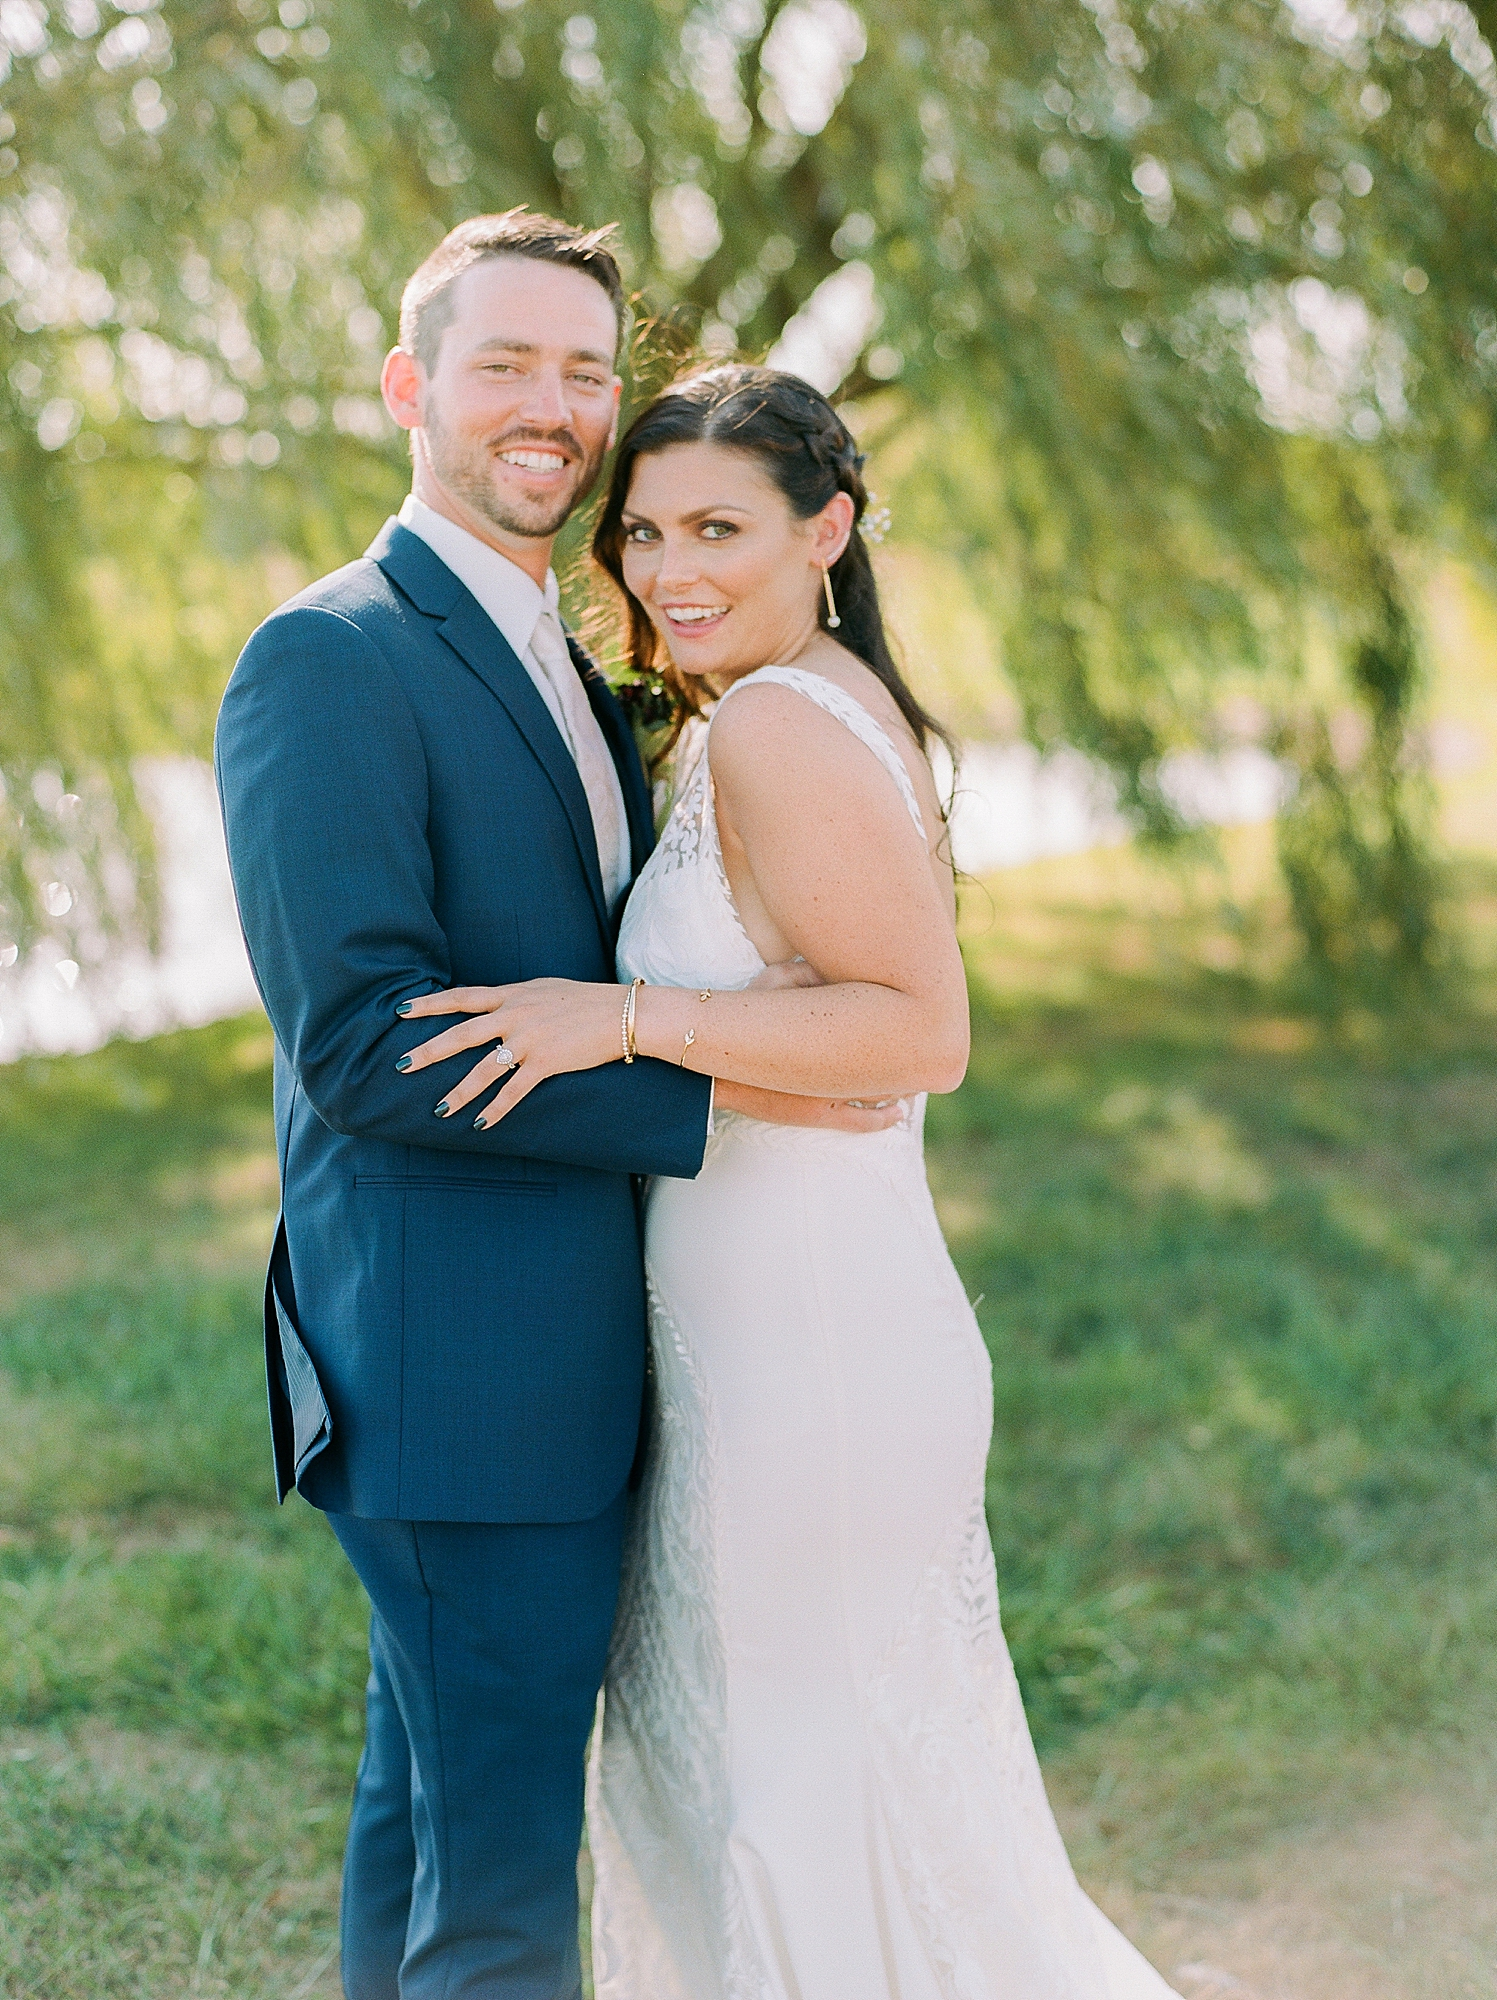 Linwood Country Club Film Wedding Photography by Magdalena Studios South Jersey Wedding Photographer 13